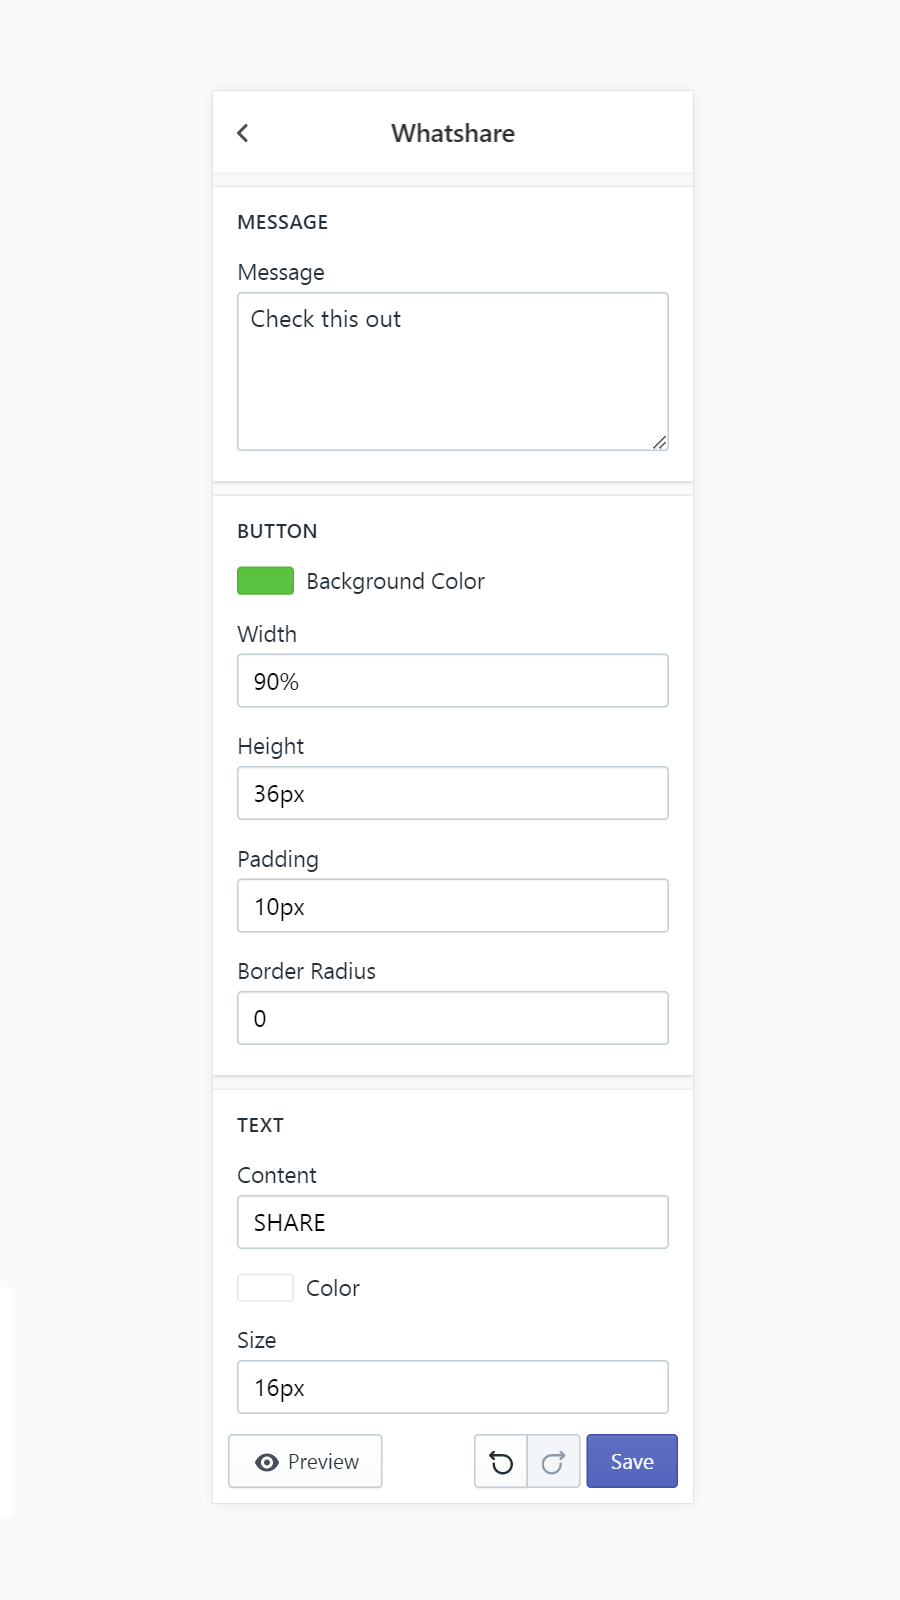 Design your Shopify WhatsApp share button